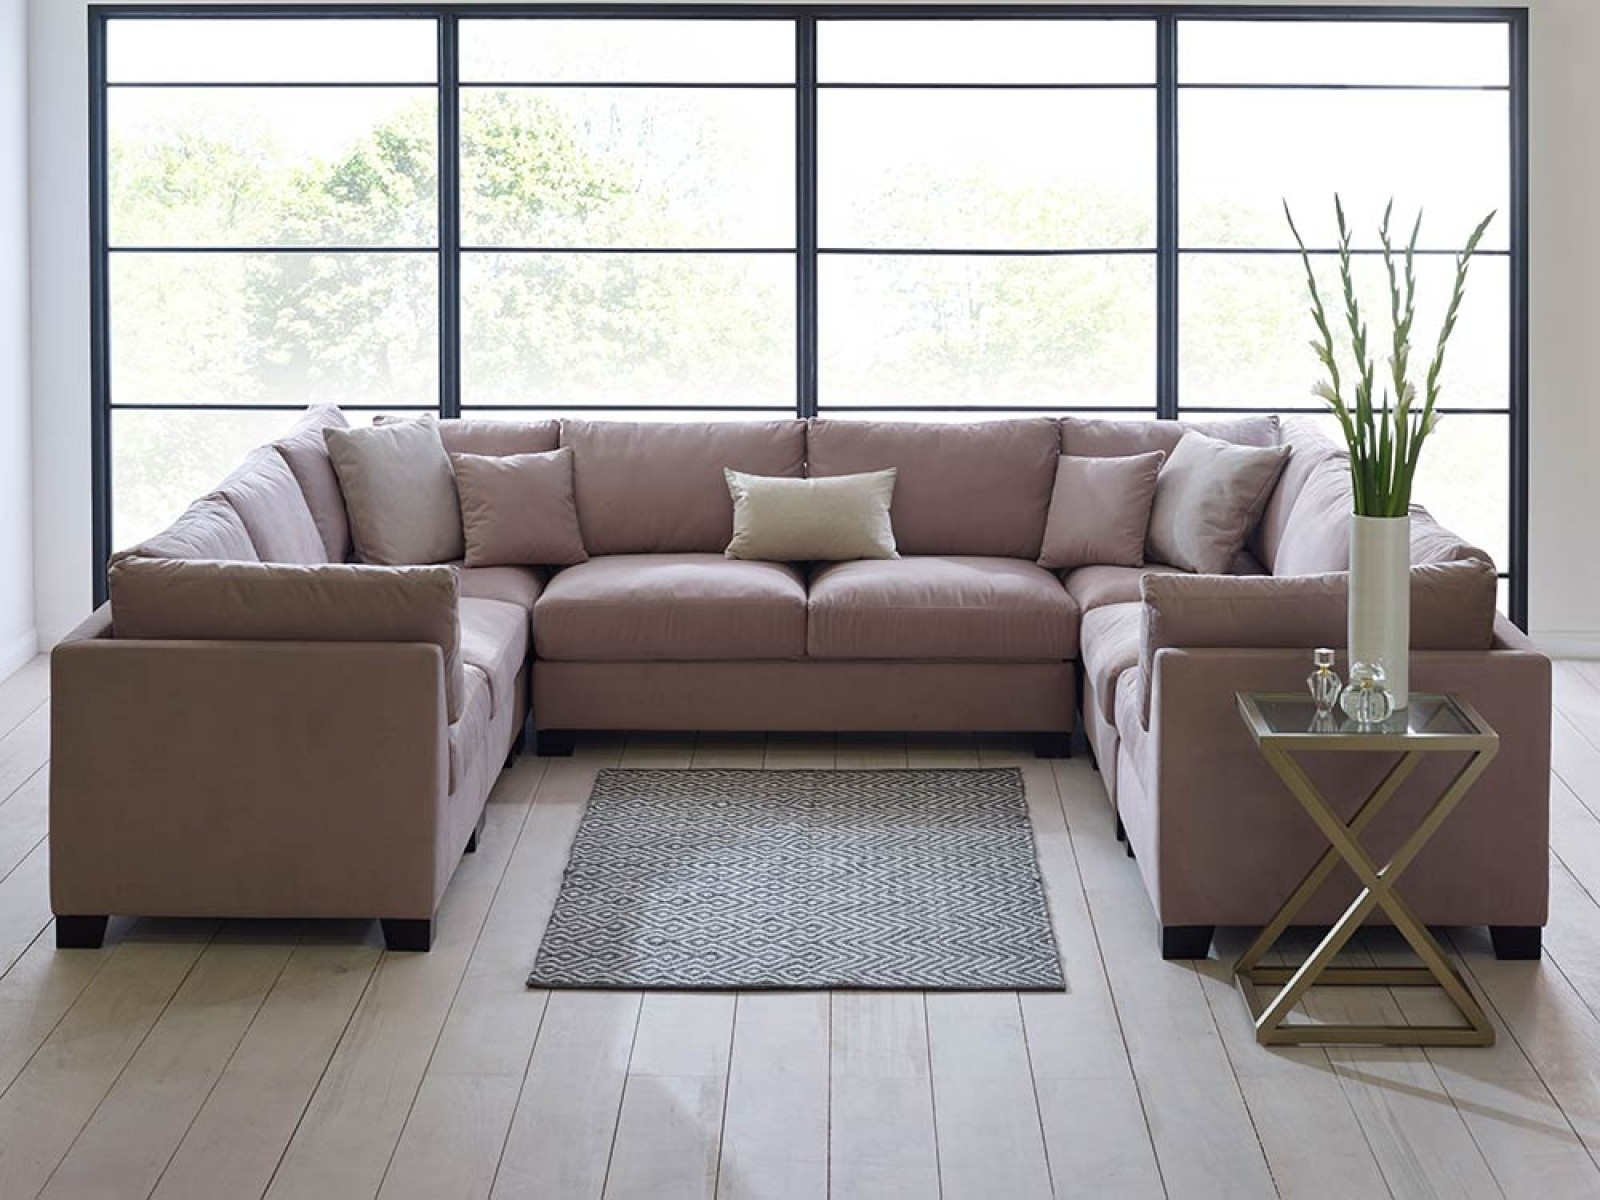 Small U Shaped Sectional Sofas Within Well Known U Shaped Sofa – Google Search (View 7 of 15)